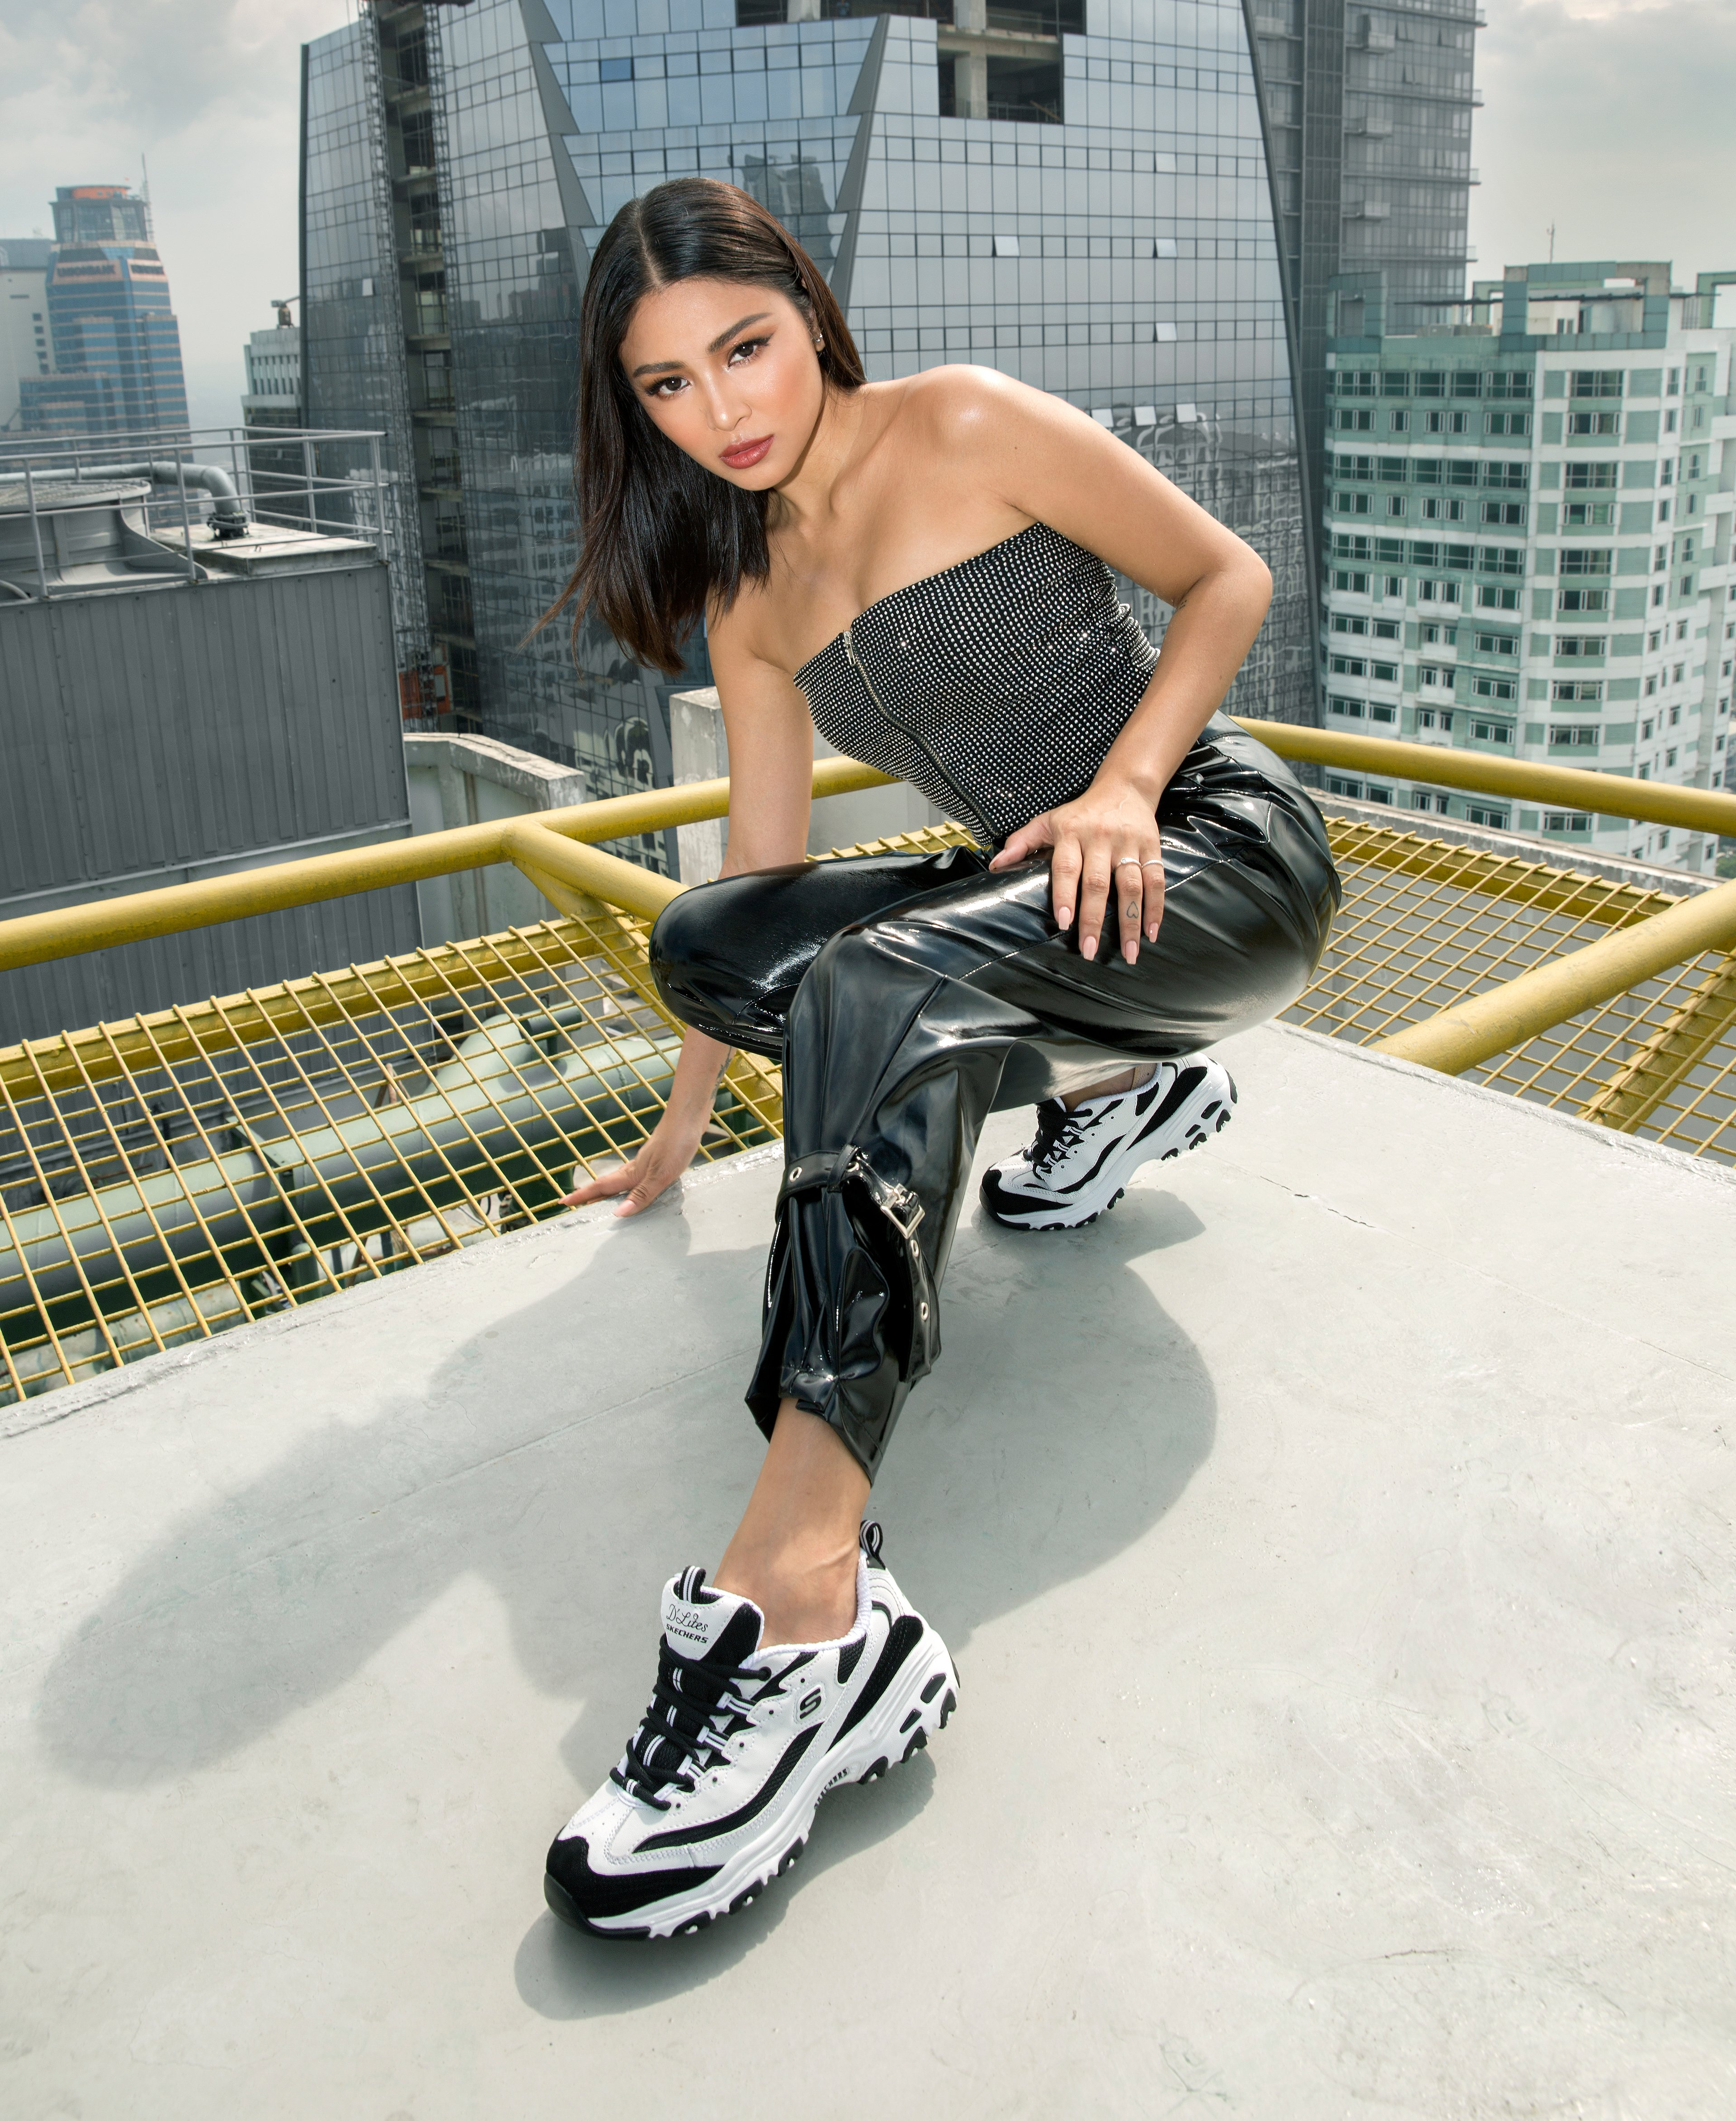 Skechers' Skech Air and D'Lites Featured In Nadine Lustre's